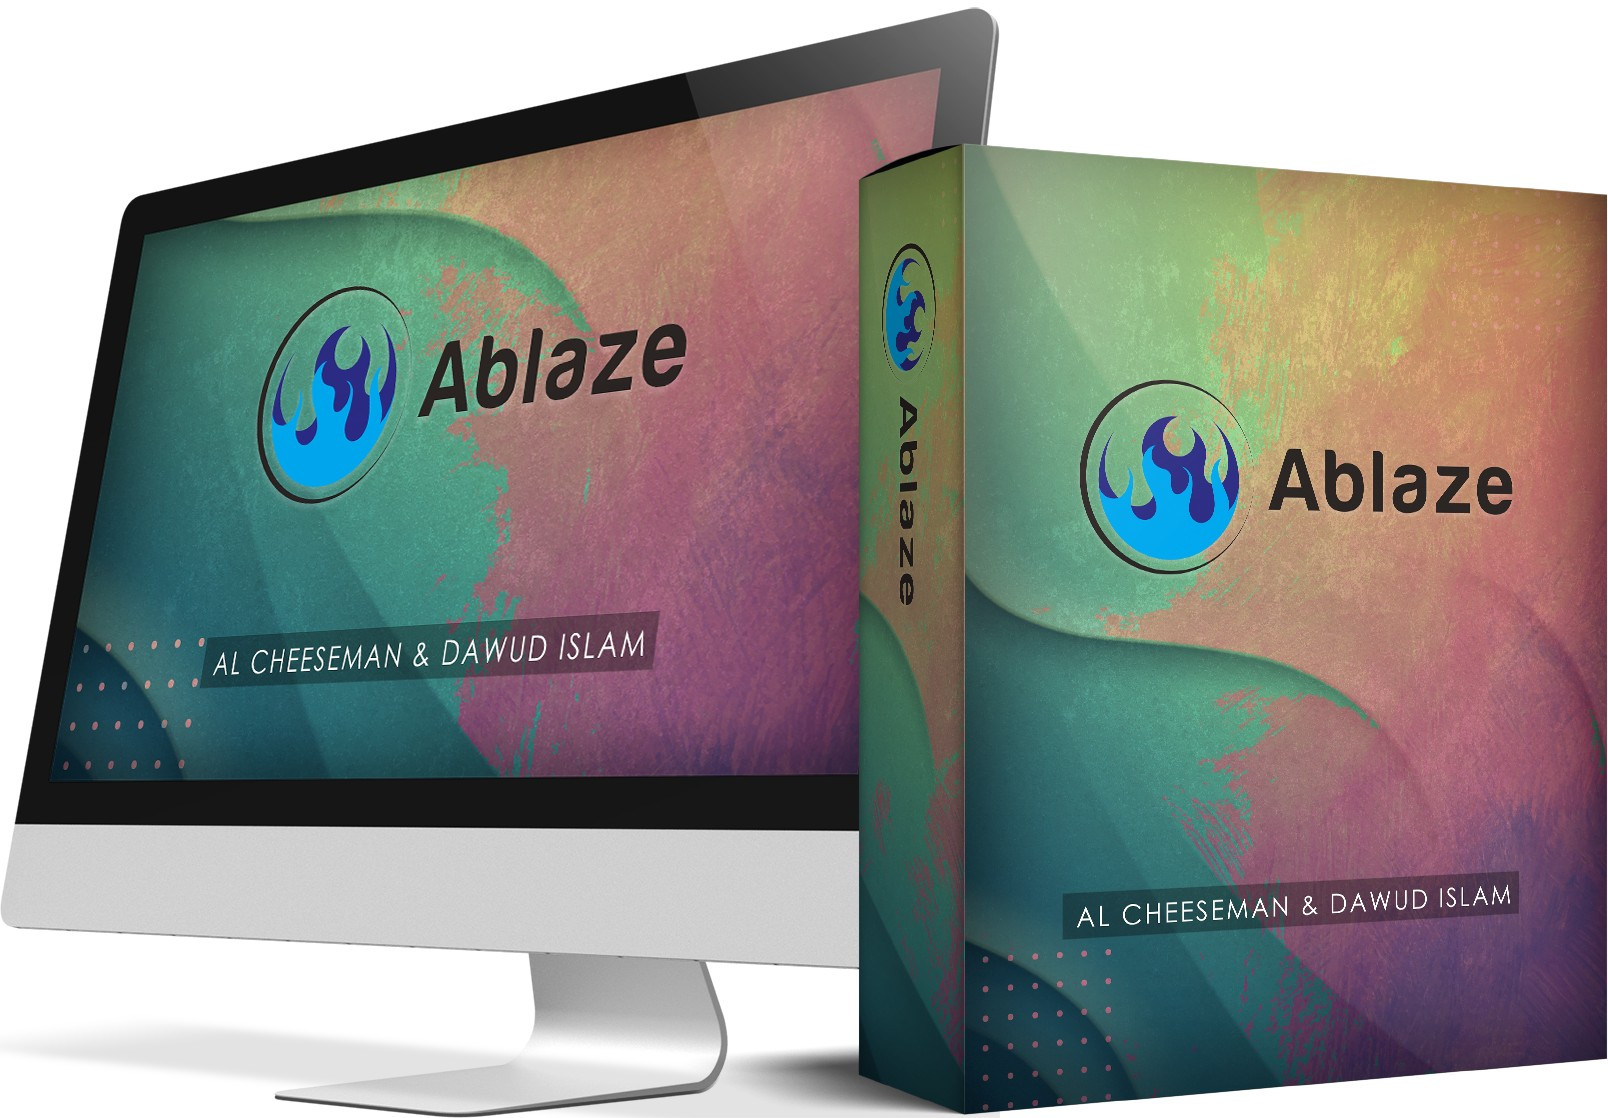 Ablaze-review